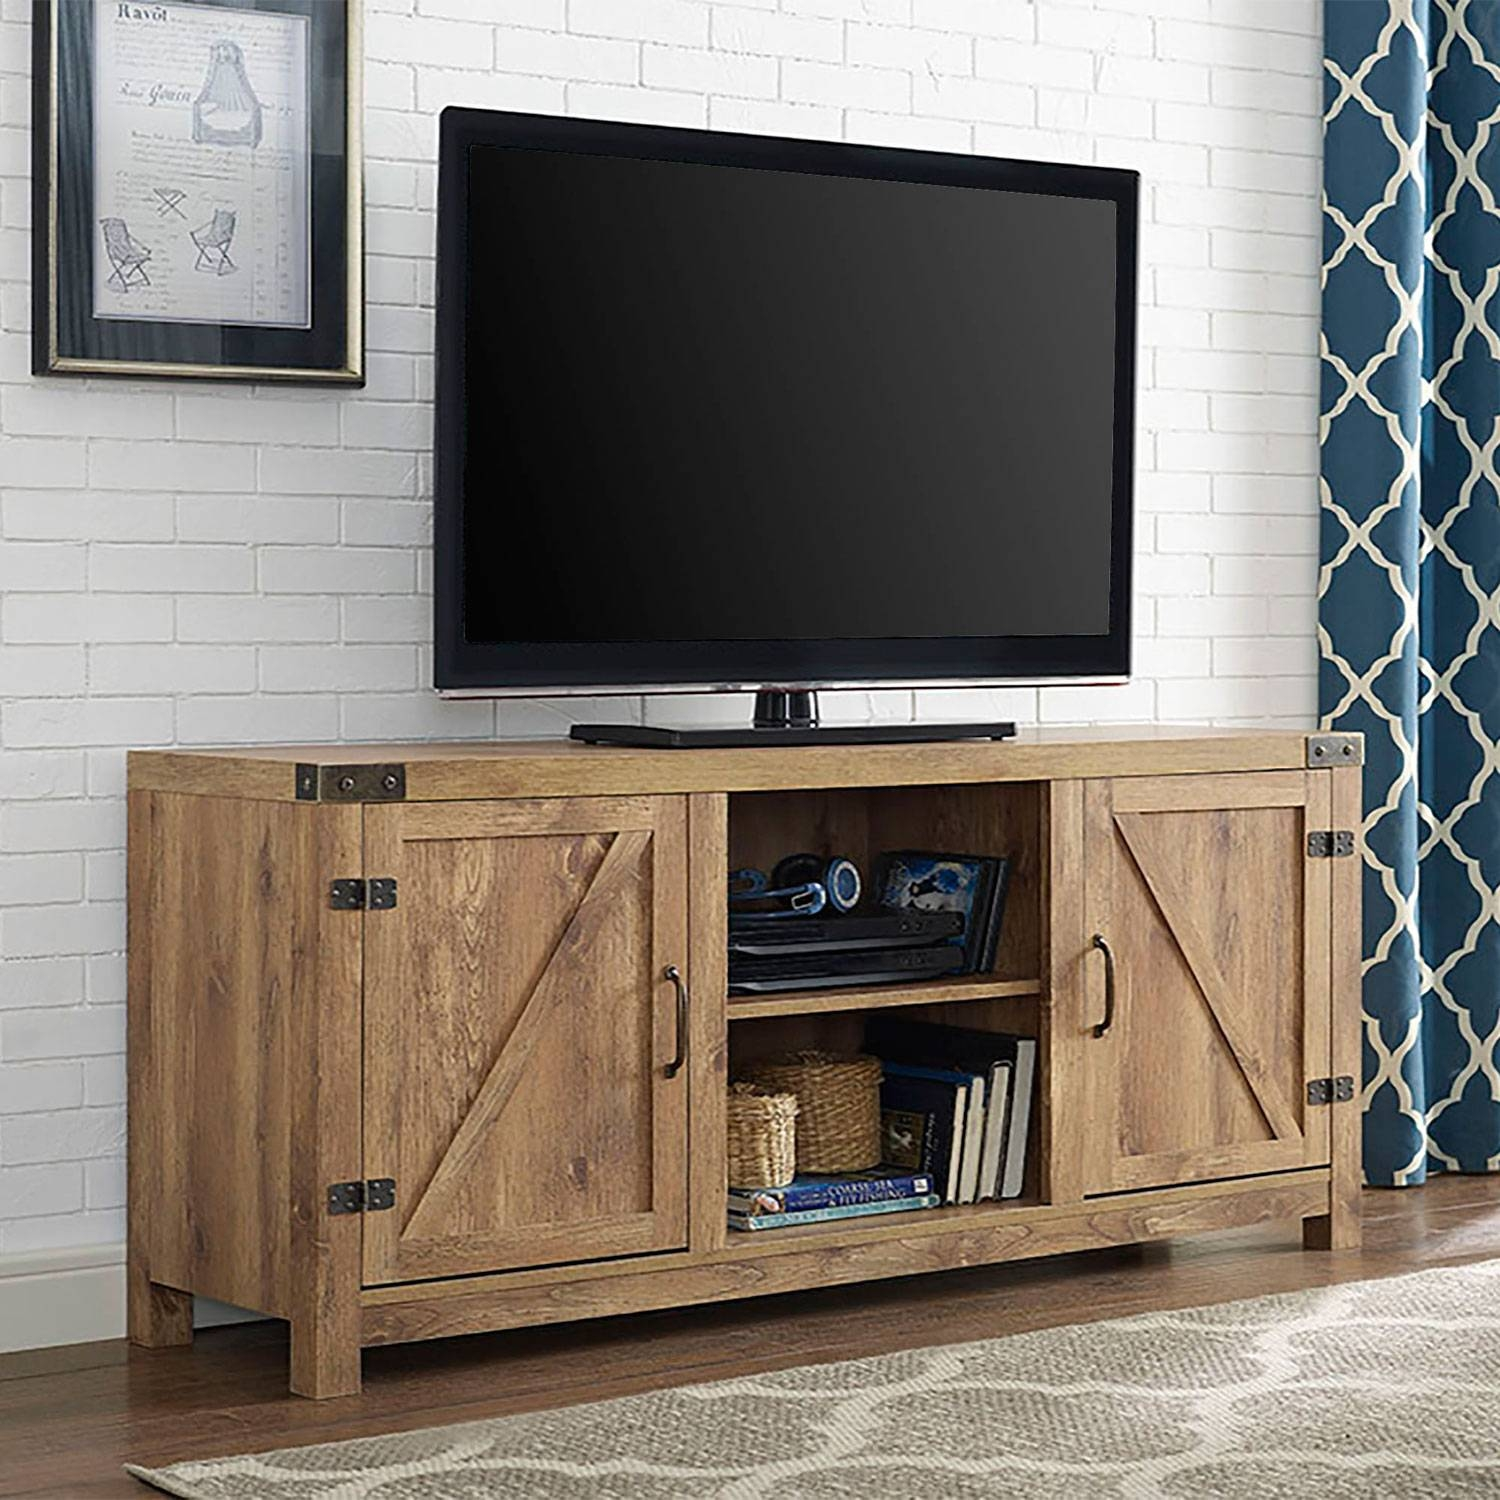 Tv Stands & Cabinets On Sale | Bellacor pertaining to 24 Inch Tall Tv Stands (Image 11 of 15)